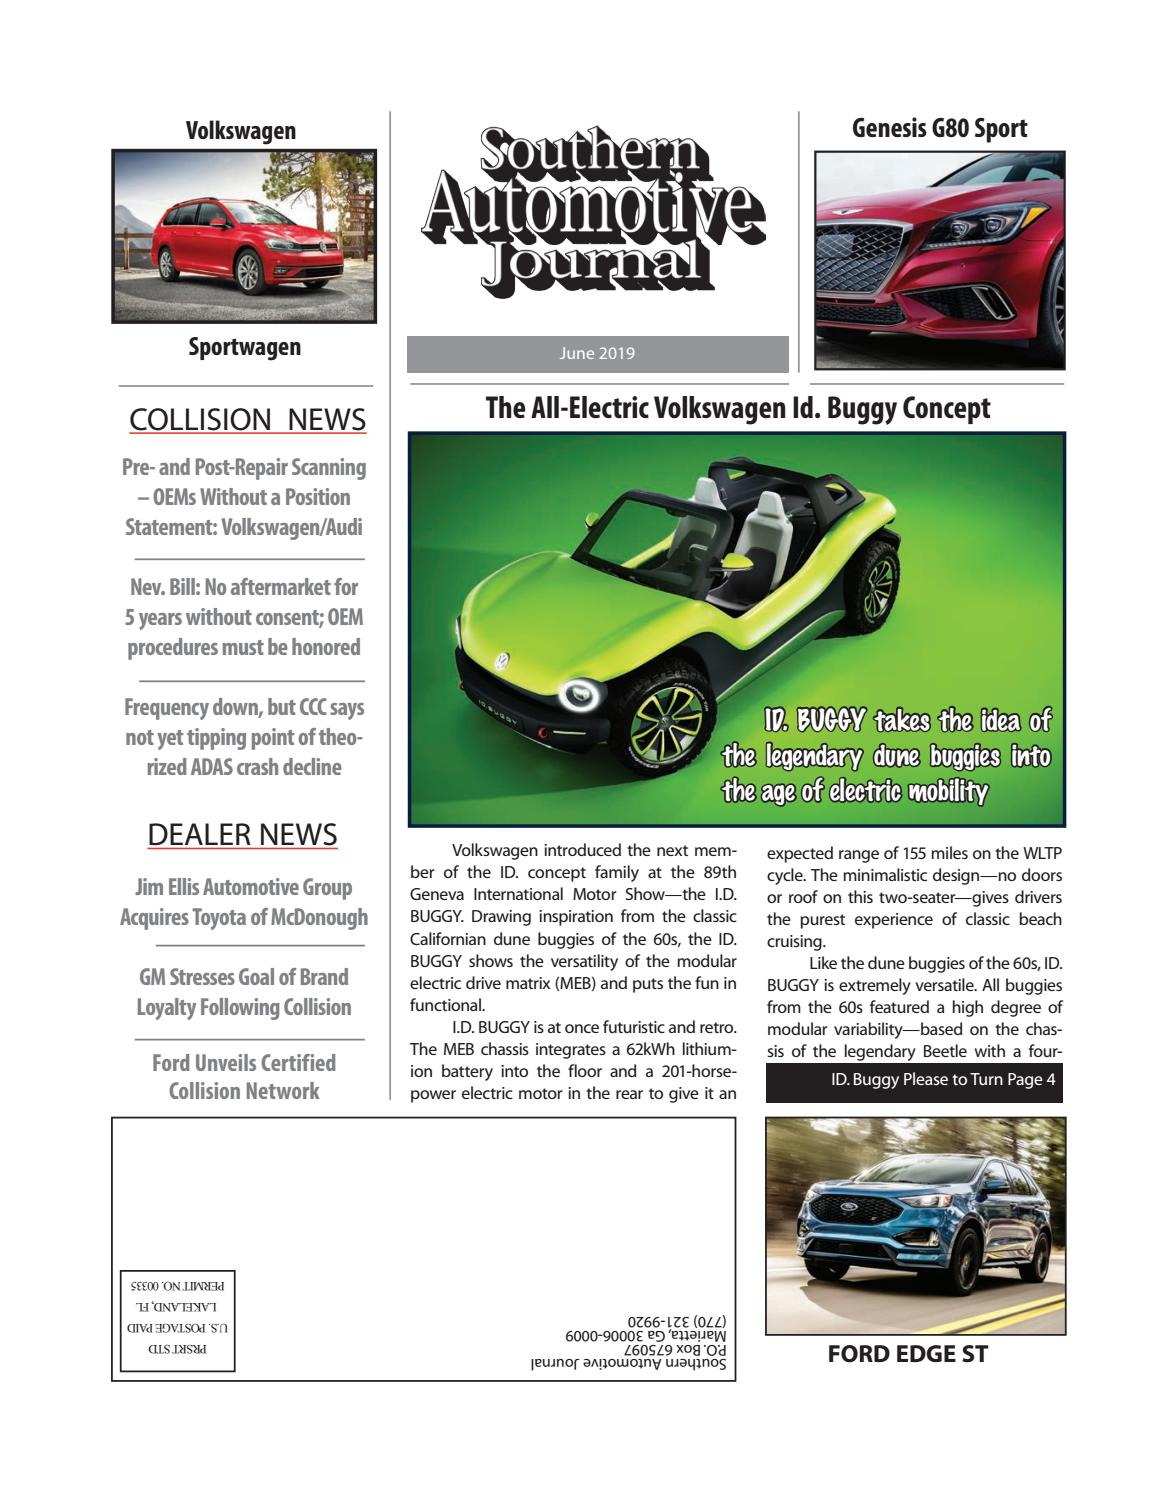 Southern Automotive Journal May 2019 Issue by Southern